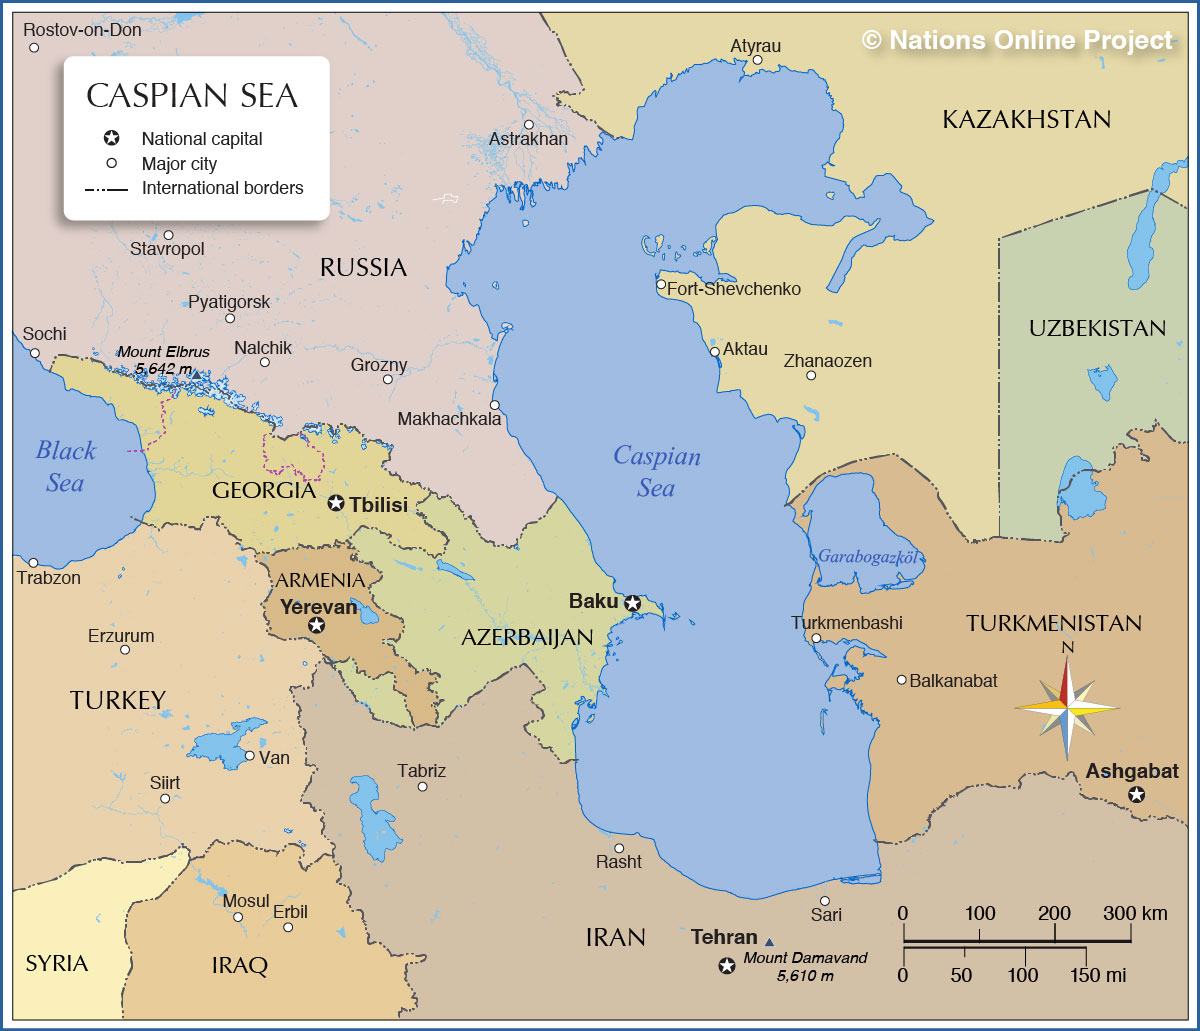 Map Of Caspian Sea Map of the Caspian Sea   Nations Online Project Map Of Caspian Sea